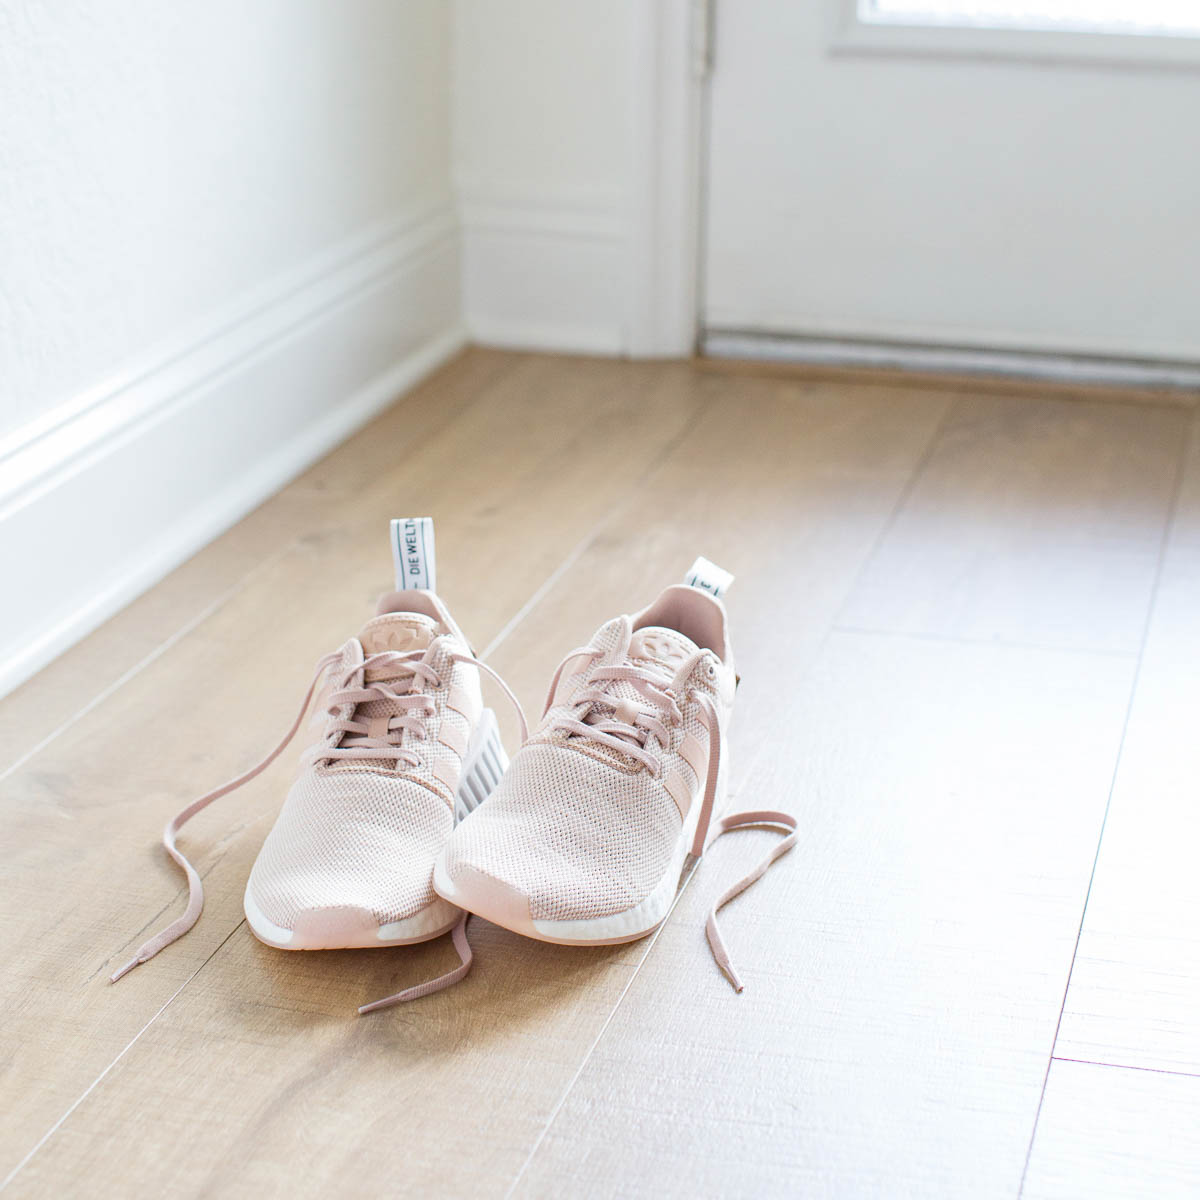 """Simply put, movement is an antidepressant - When we move the body, we release dopamine, a chemical that plays a major role in happiness, and therefore health. Multiple studies have concluded that any movement at all – stretching, dancing, or going for a stroll – has short-term and long-term benefits. Sustained physical exercise produces an immediate anxiety-reducing, relaxing """"high"""" due to the release of endorphins. Long-term, movement is associated with increased energy, better sleep, healthier bodily system function – which all reduce mental discomfort and chances for physical disease."""